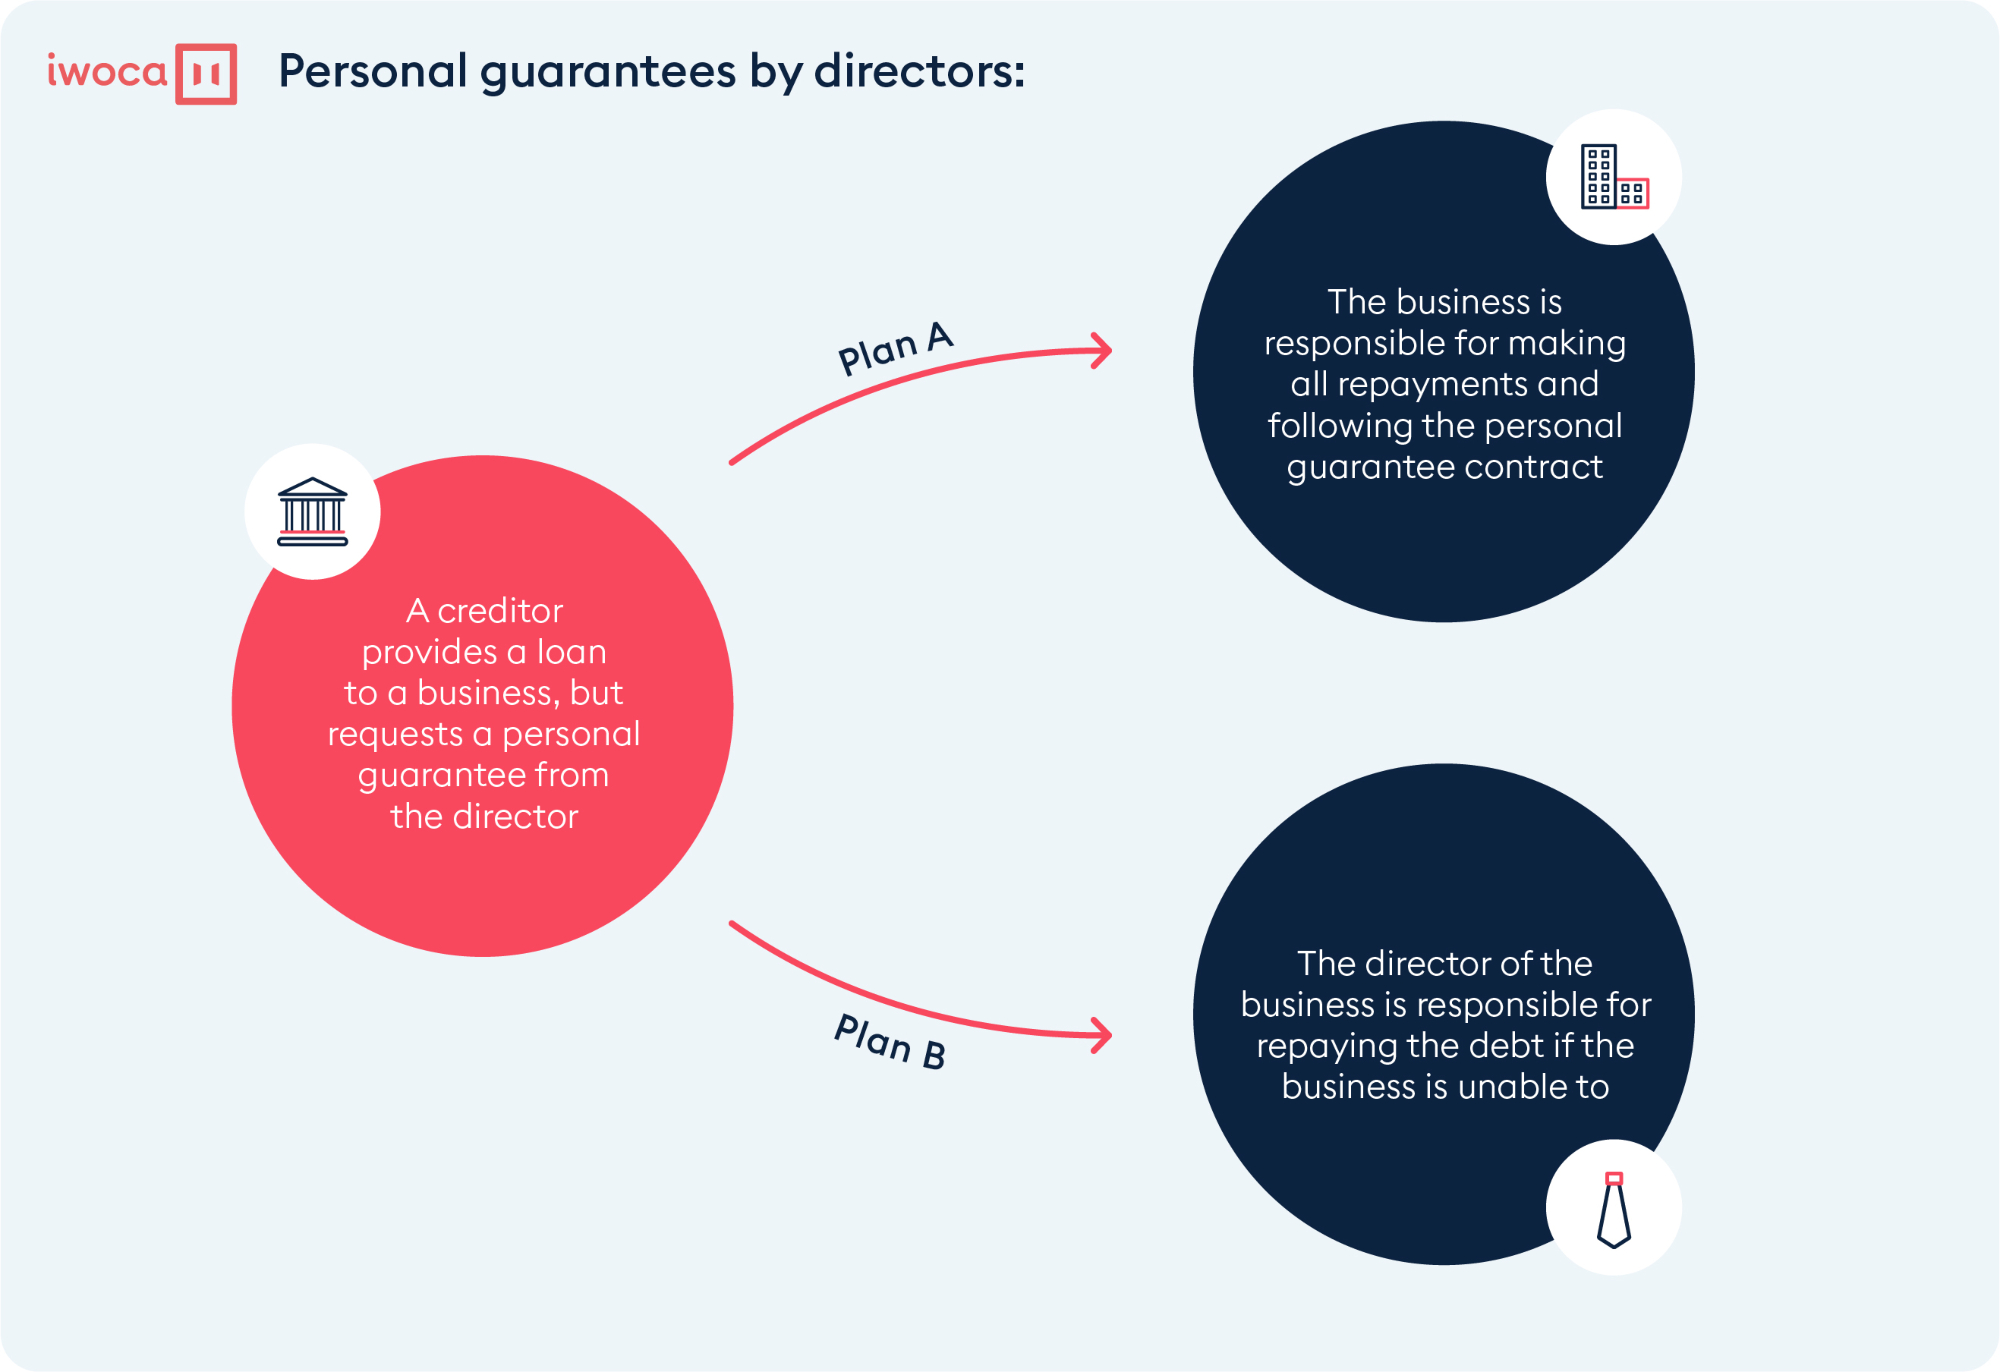 Personal guarantees by directors